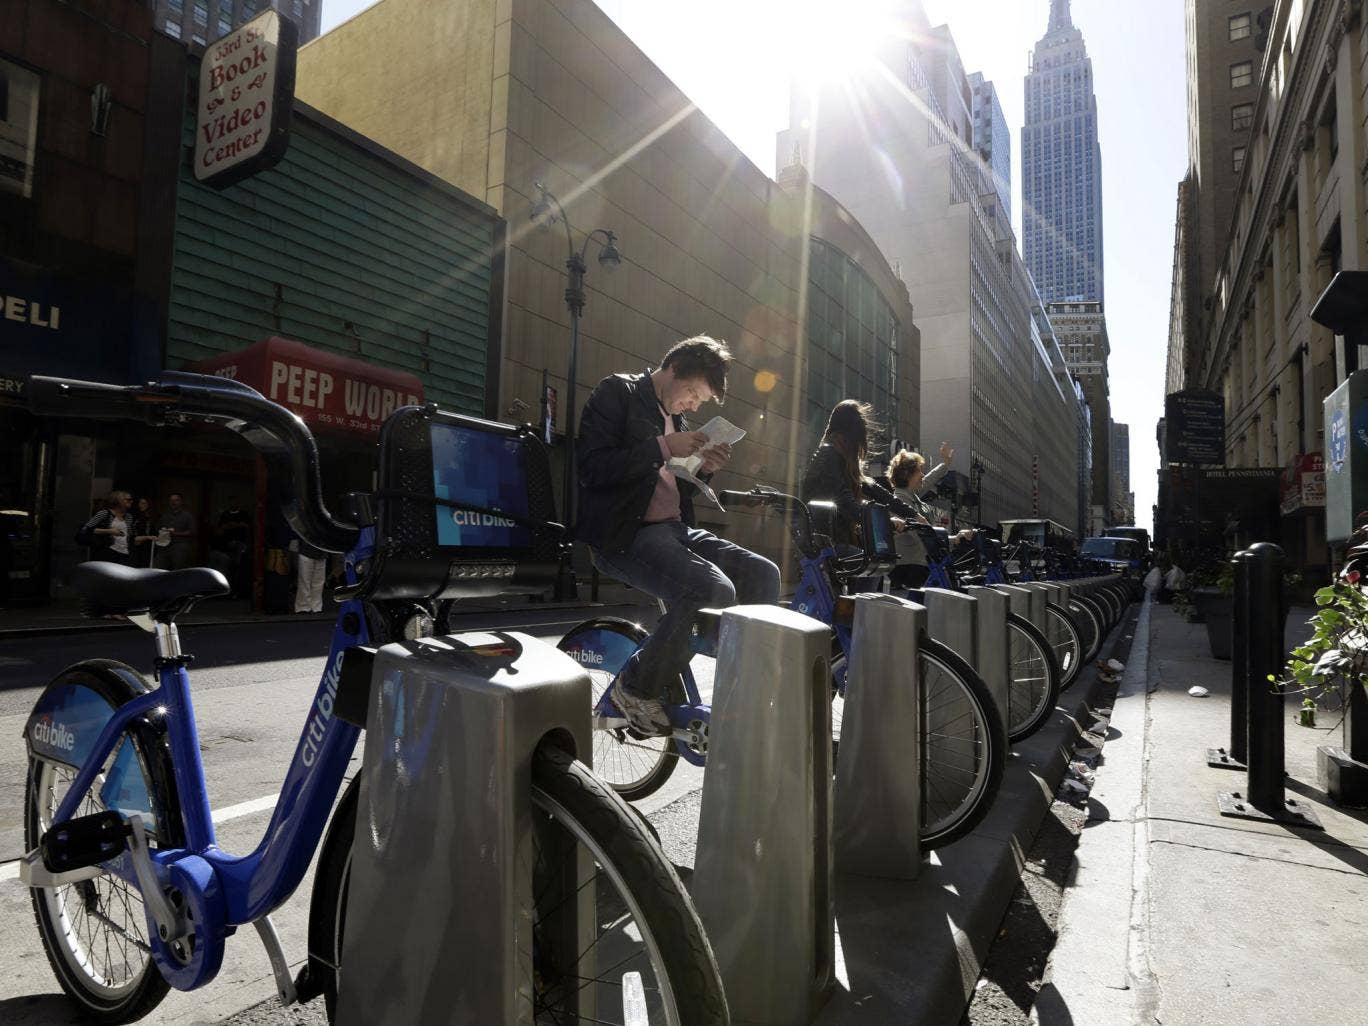 More than 9,000 New Yorkers have signed up to take part in the Citi Bike scheme